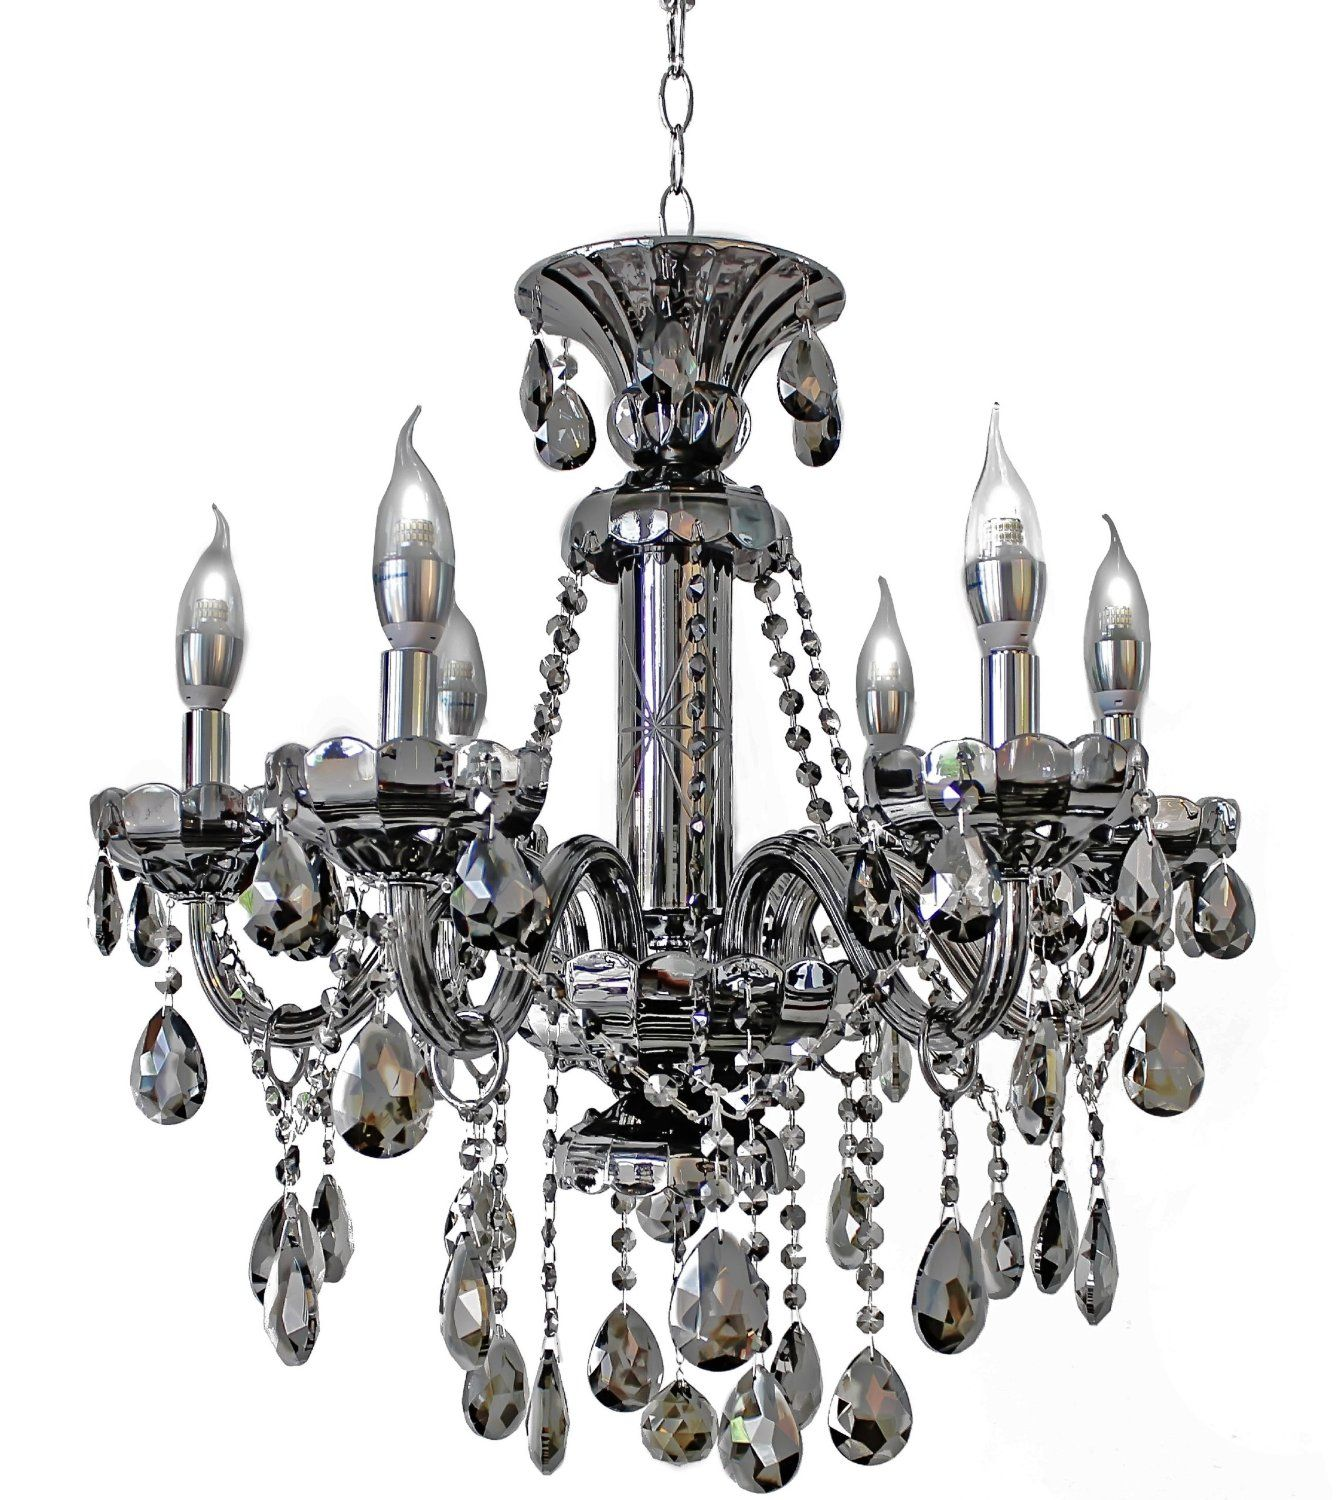 6 light Maria Theresa Crystal Chandelier Smoked Black Mirror